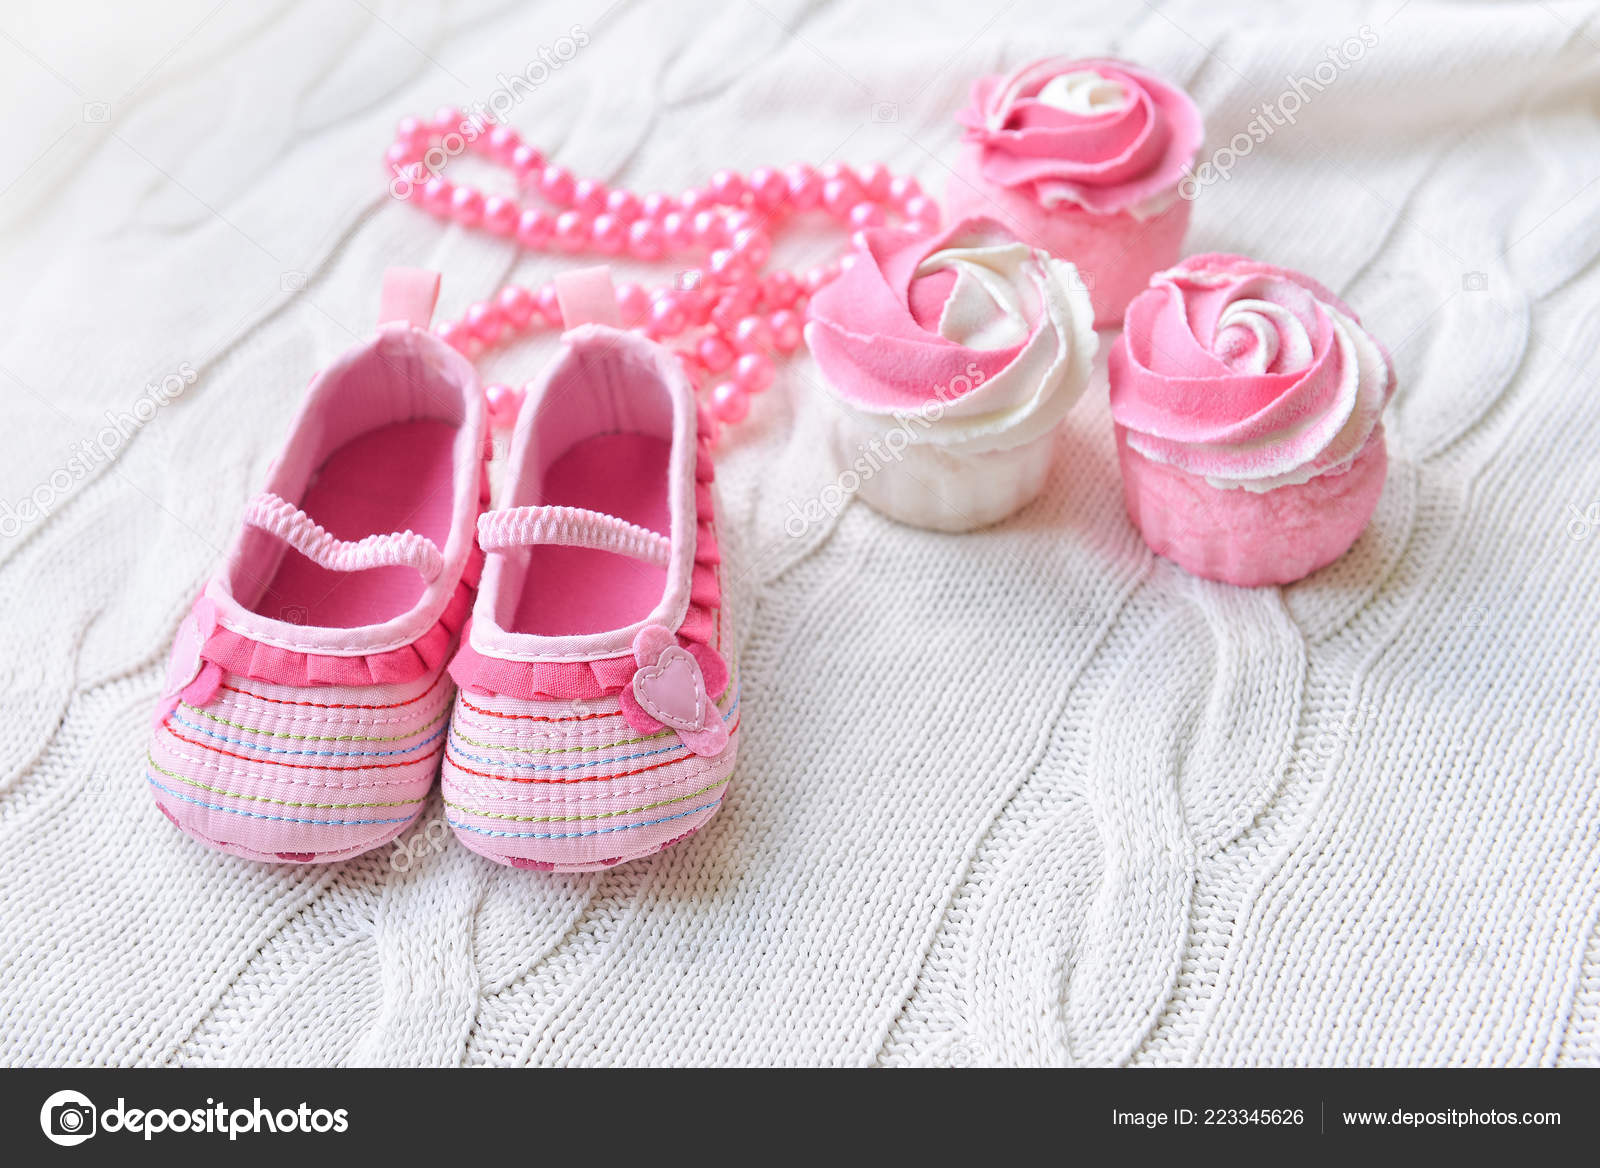 536f3111b3669 baby shoes, decor for baby shower holiday for girls — Stock Photo ...